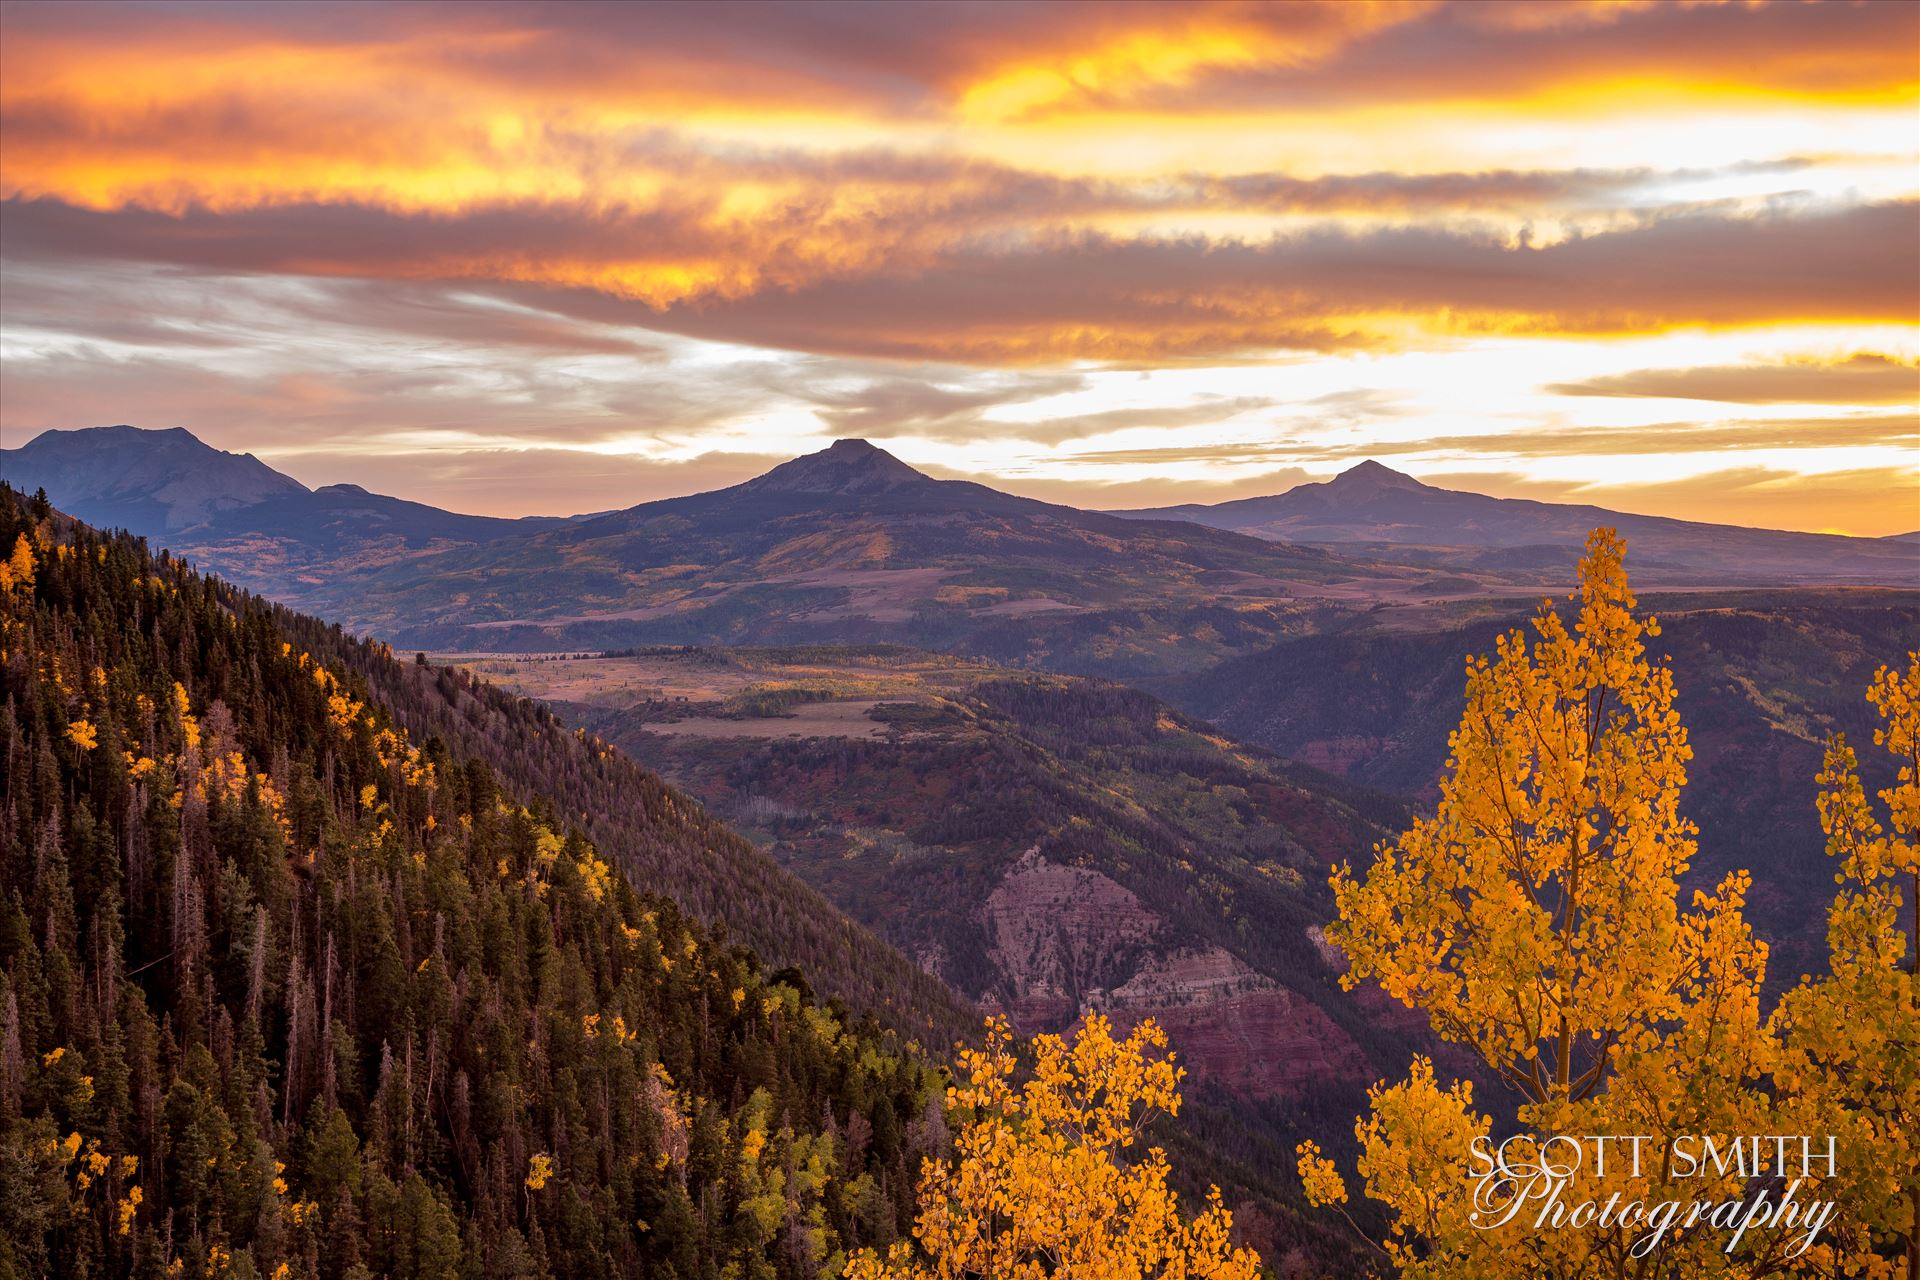 Last Dollar Road Sunset - Sunset on a quiet, secluded spot from Last Dollar Road, outside of Telluride, Colorado in the fall. by D Scott Smith